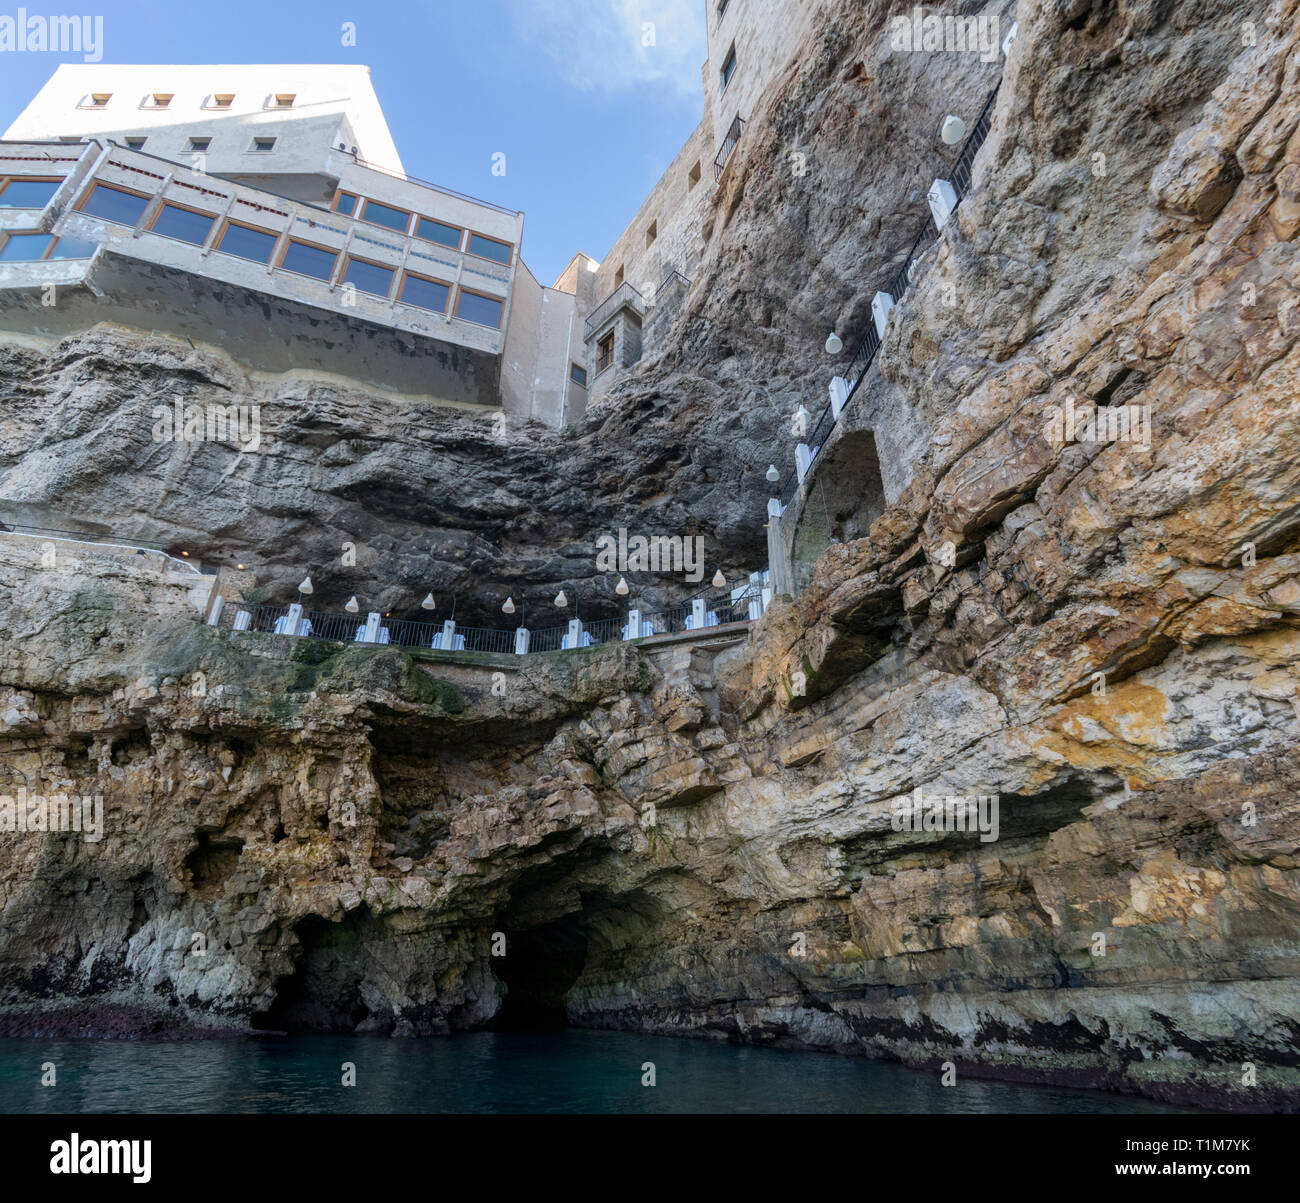 POLIGNANO, ITALY - 16 AUg 2016: The seafront entrance of Grotta Palazzese, a natural sea cave now part of a high end restaurant, in Polignano a Mare,  - Stock Image